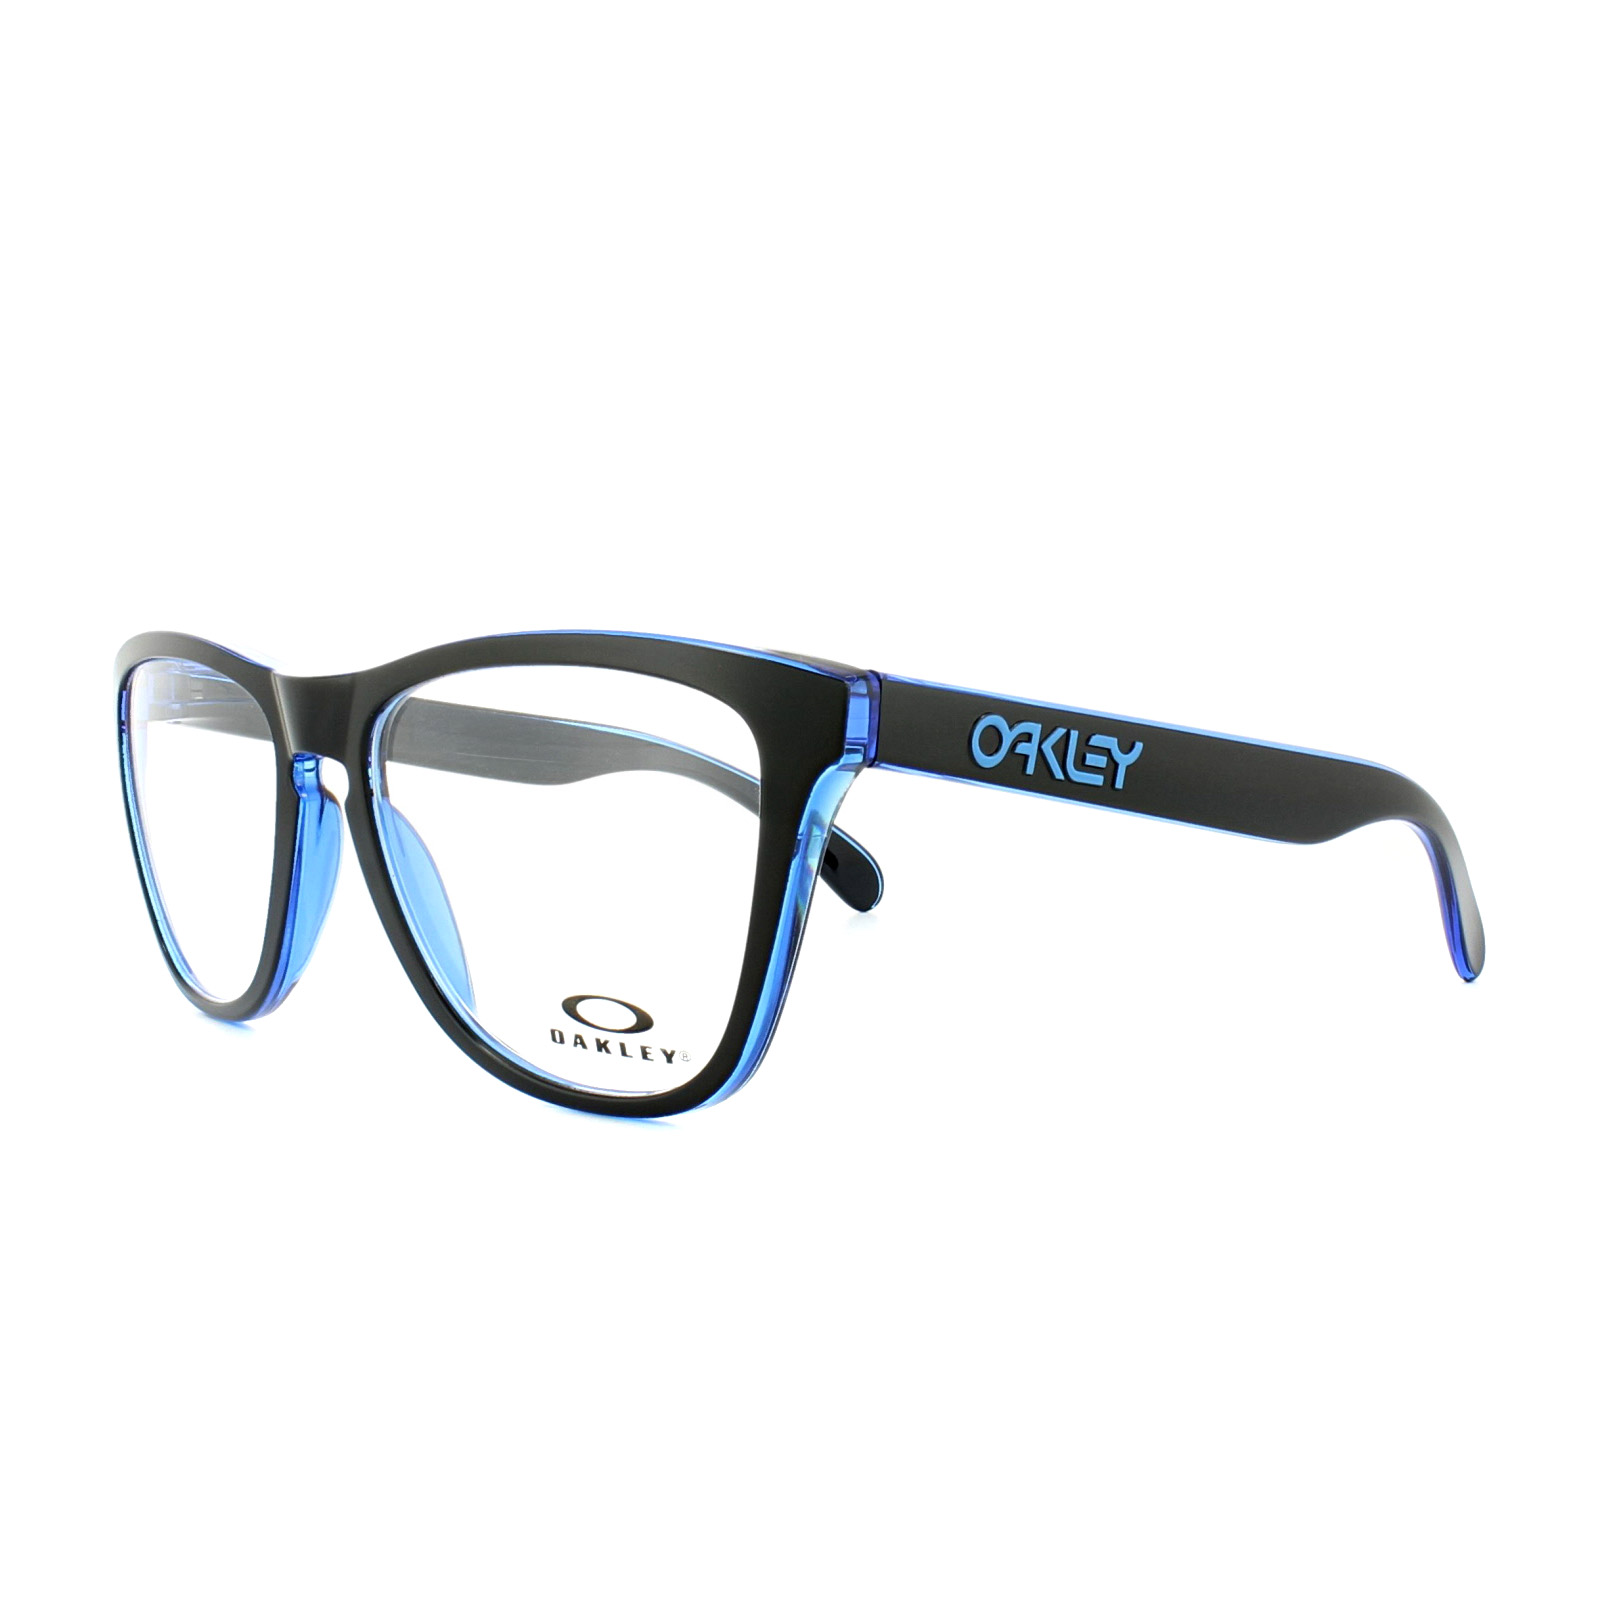 19a0db6823 Cheap Oakley Frogskins Glasses Frames - Discounted Sunglasses